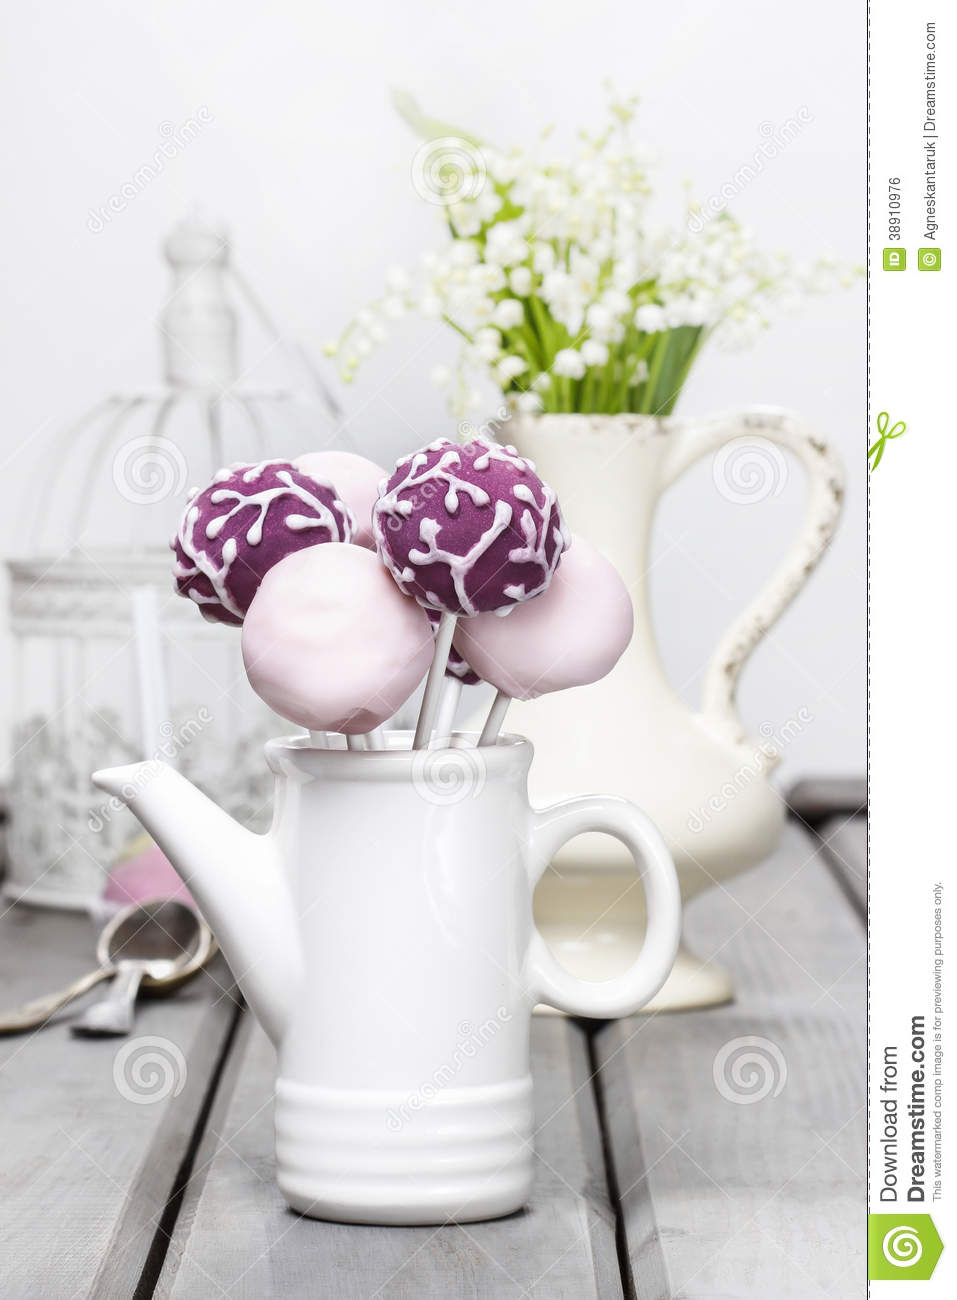 Pastel cake pops on rustic grey wooden table stock photo image of pastel cake pops on rustic grey wooden table izmirmasajfo